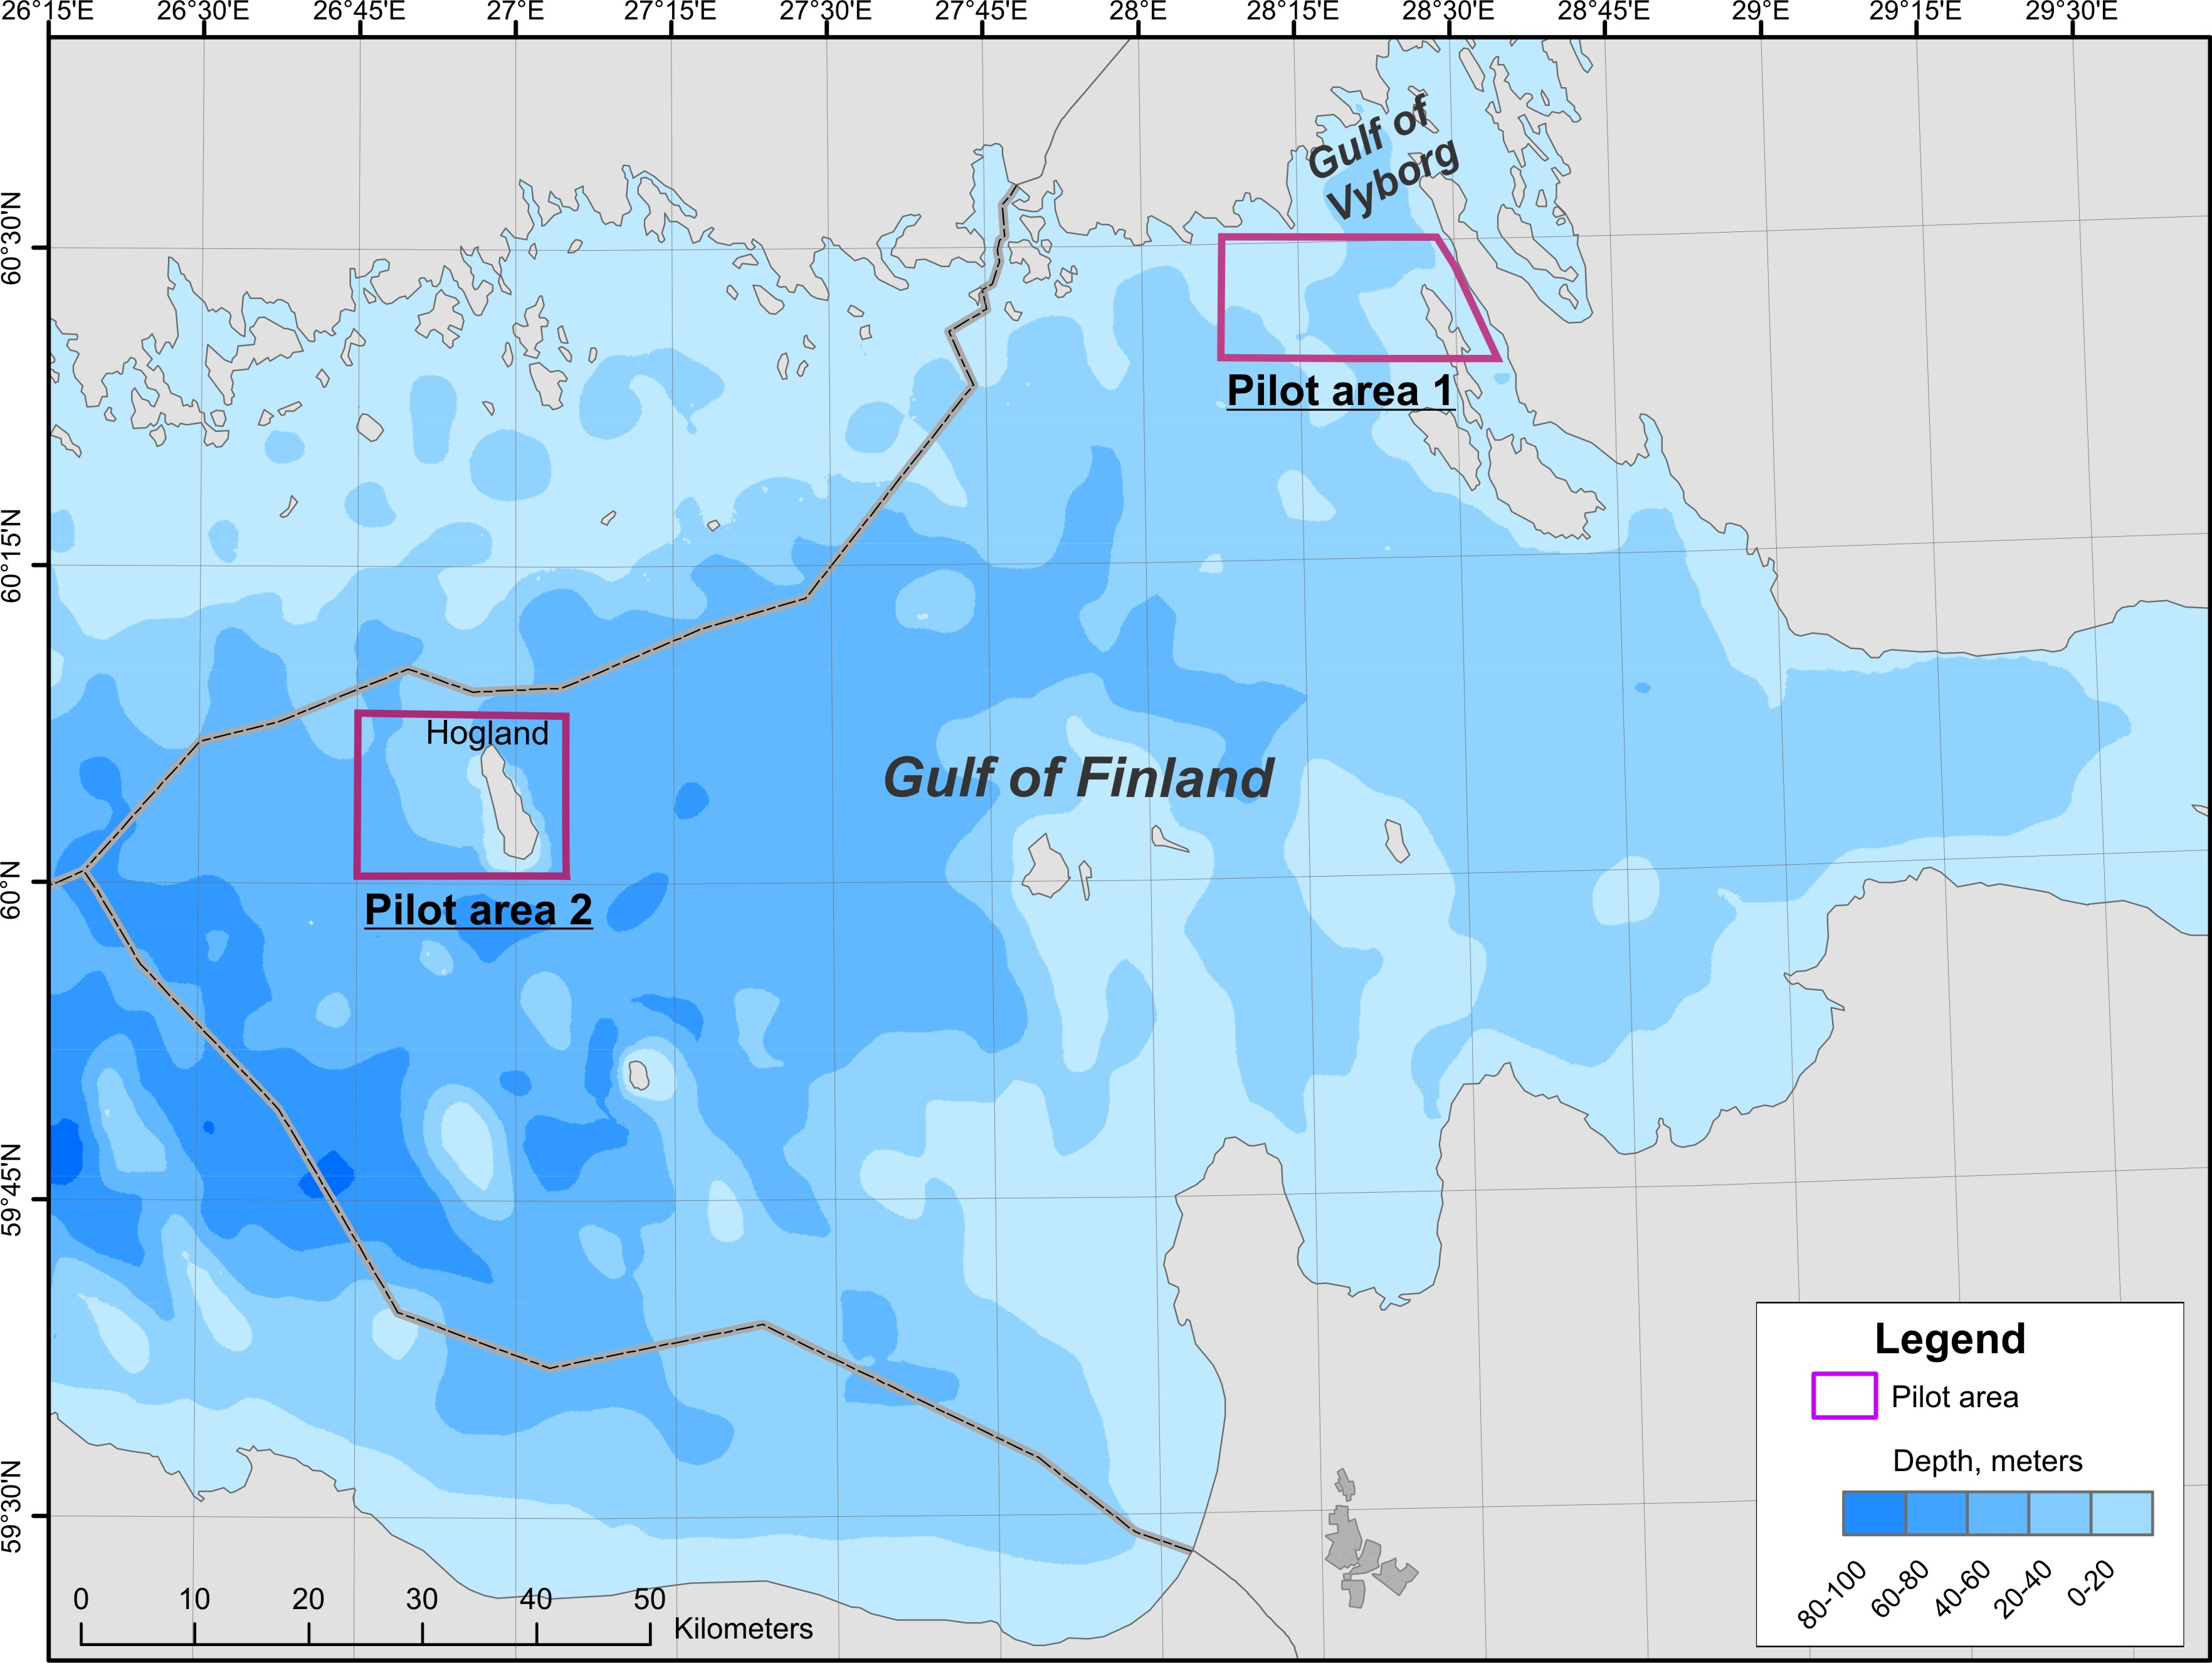 2_Perspective_areas_Gulf_of_Finland.jpg